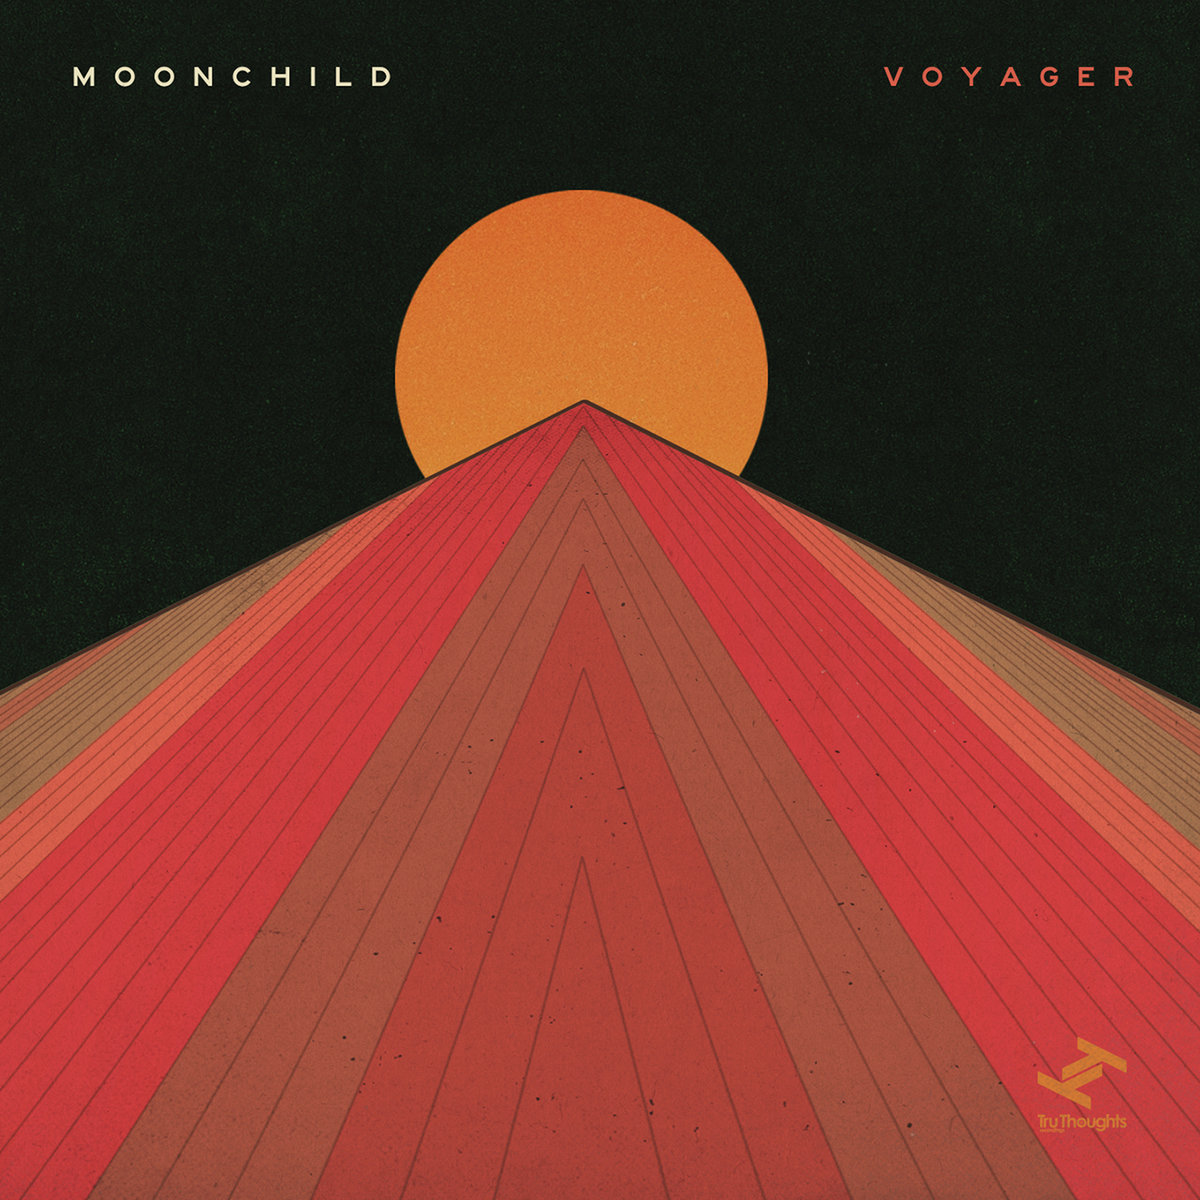 Moonchild - Voyager - I discovered Moonchild a couple weeks ago and I have not been disappointed yet. Their sound is soulful, cool, and refreshing. My favorites on Voyager are Cure, 6am, The List, and Every Part (For Linda).